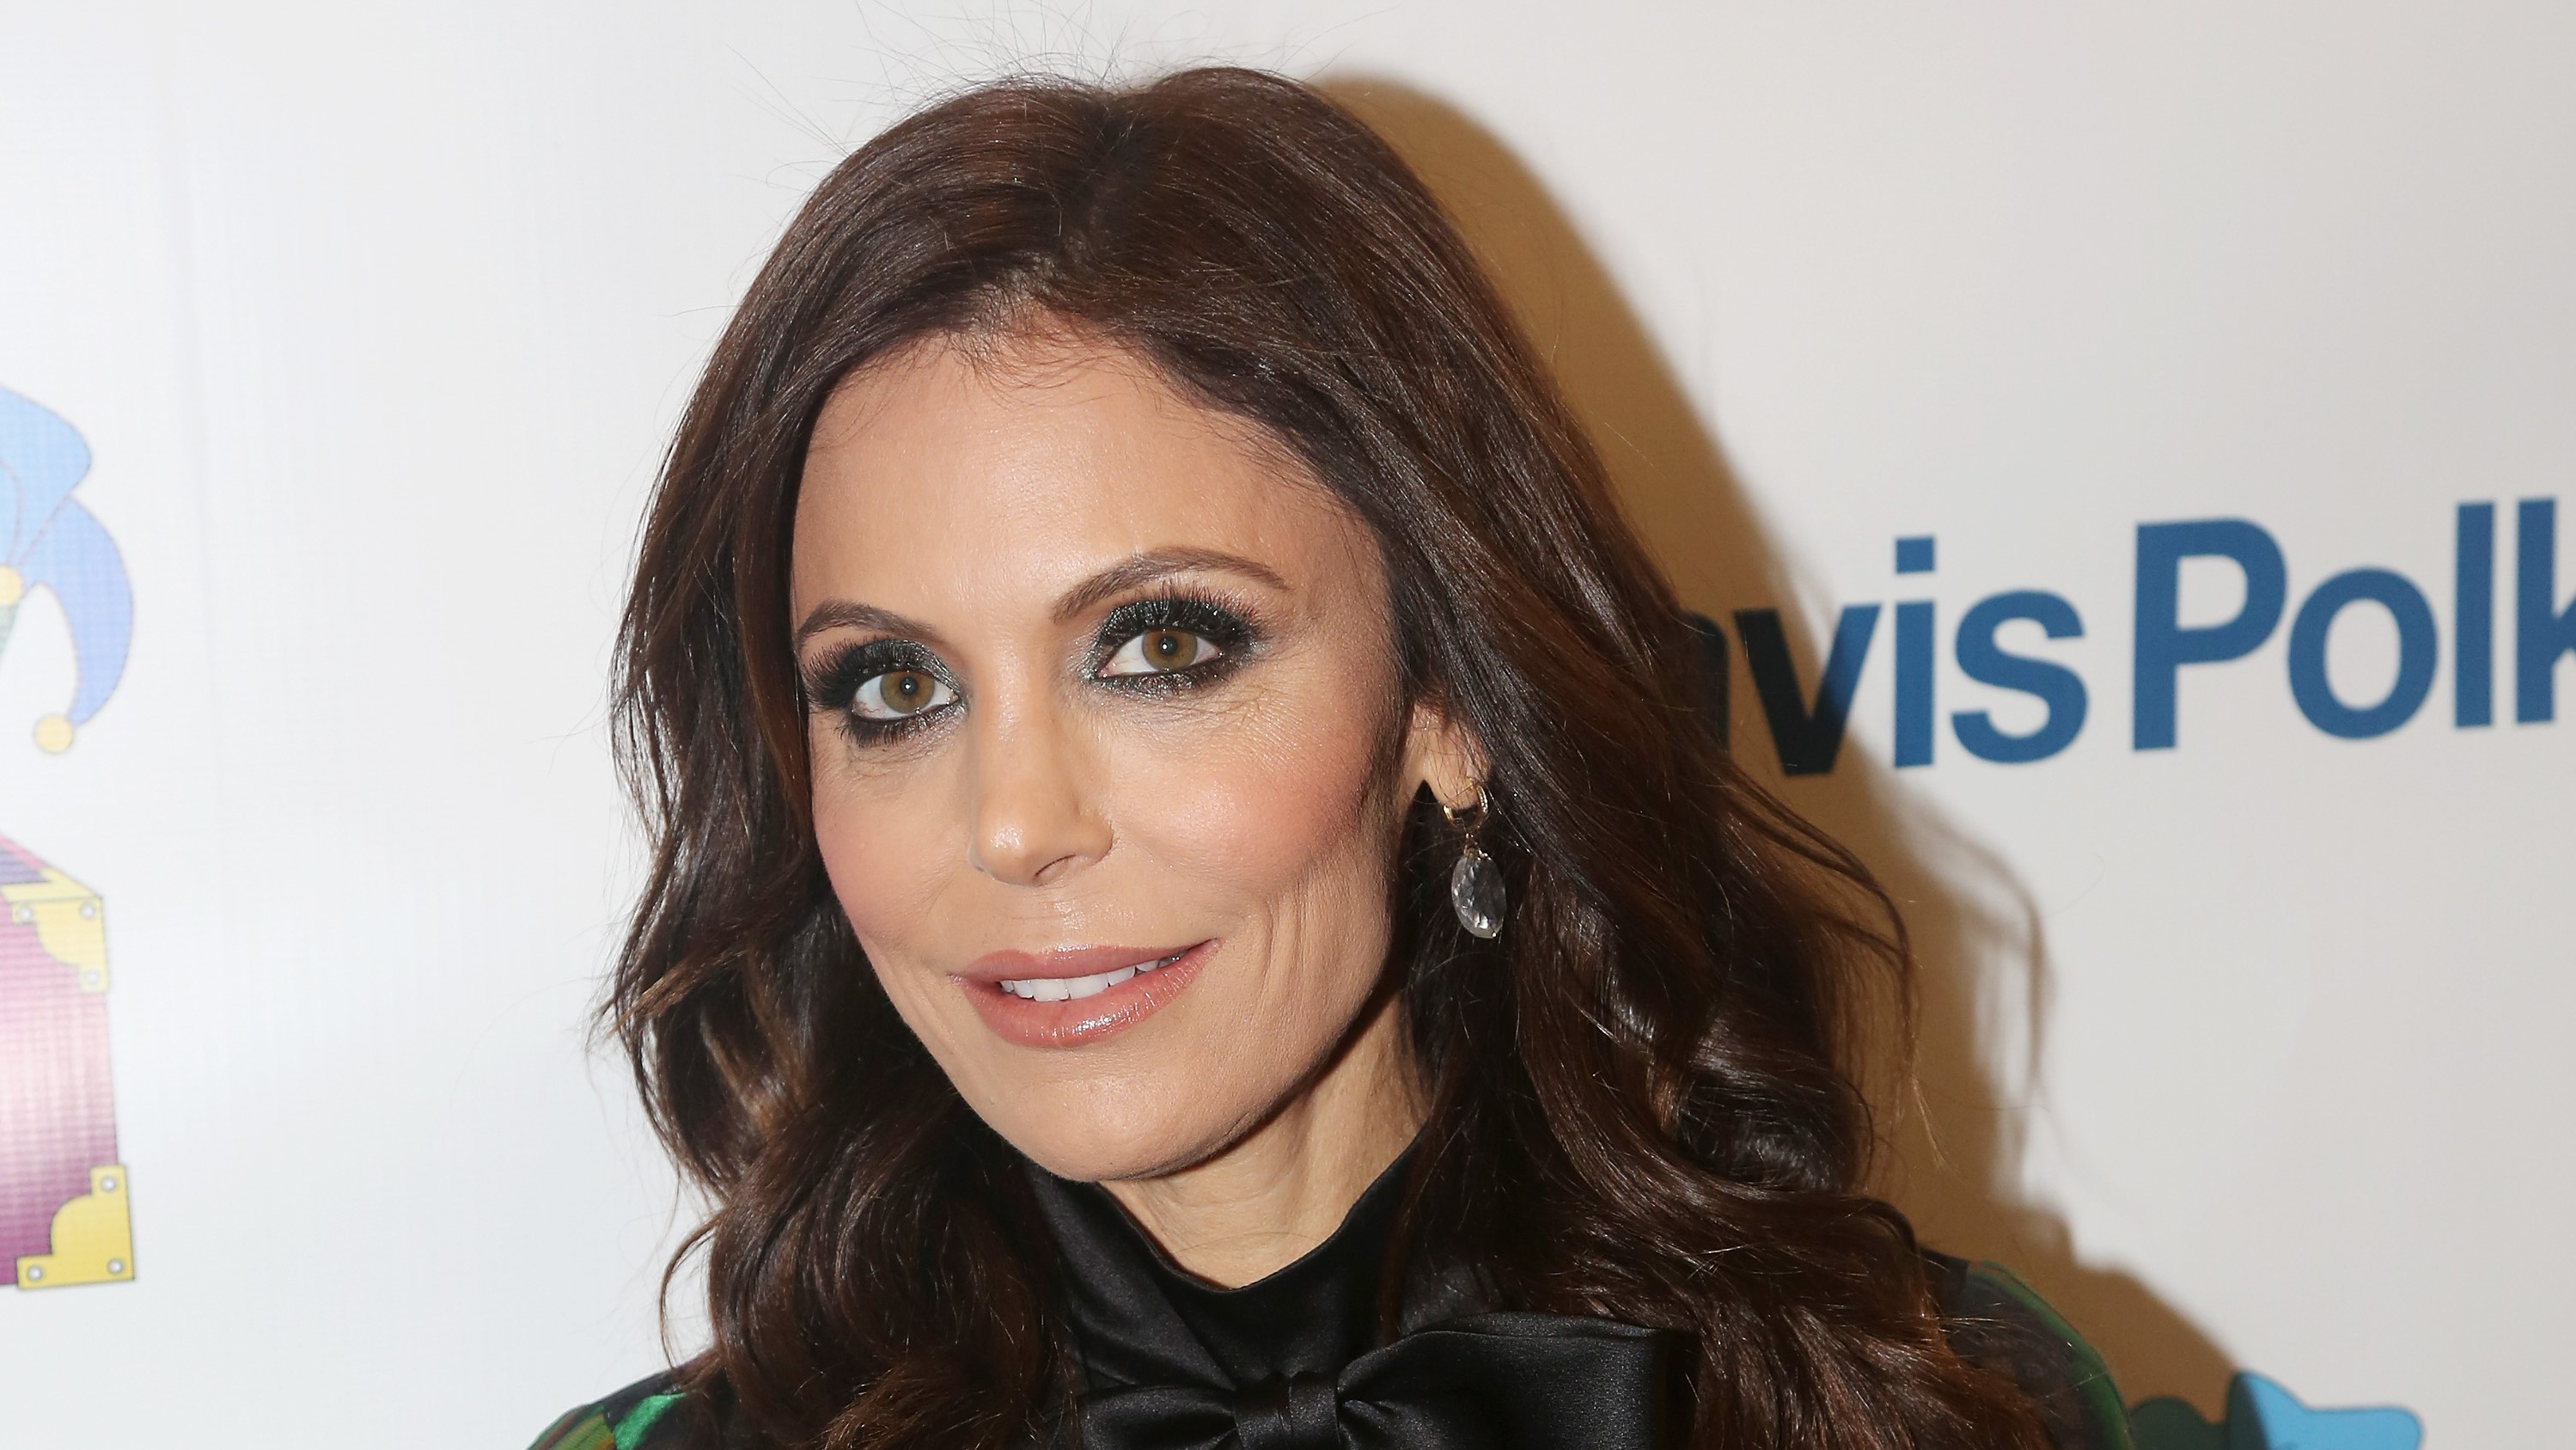 Westlake Legal Group GettyImages-1058098682 Bethenny Frankel leaving 'Real Housewives of New York,' thanks fans New York Post fox-news/entertainment/tv fox-news/entertainment/genres/reality fox-news/entertainment/celebrity-news fox-news/entertainment fnc/entertainment fnc article 2c4d562d-5ac2-515e-8a49-8565865822c8